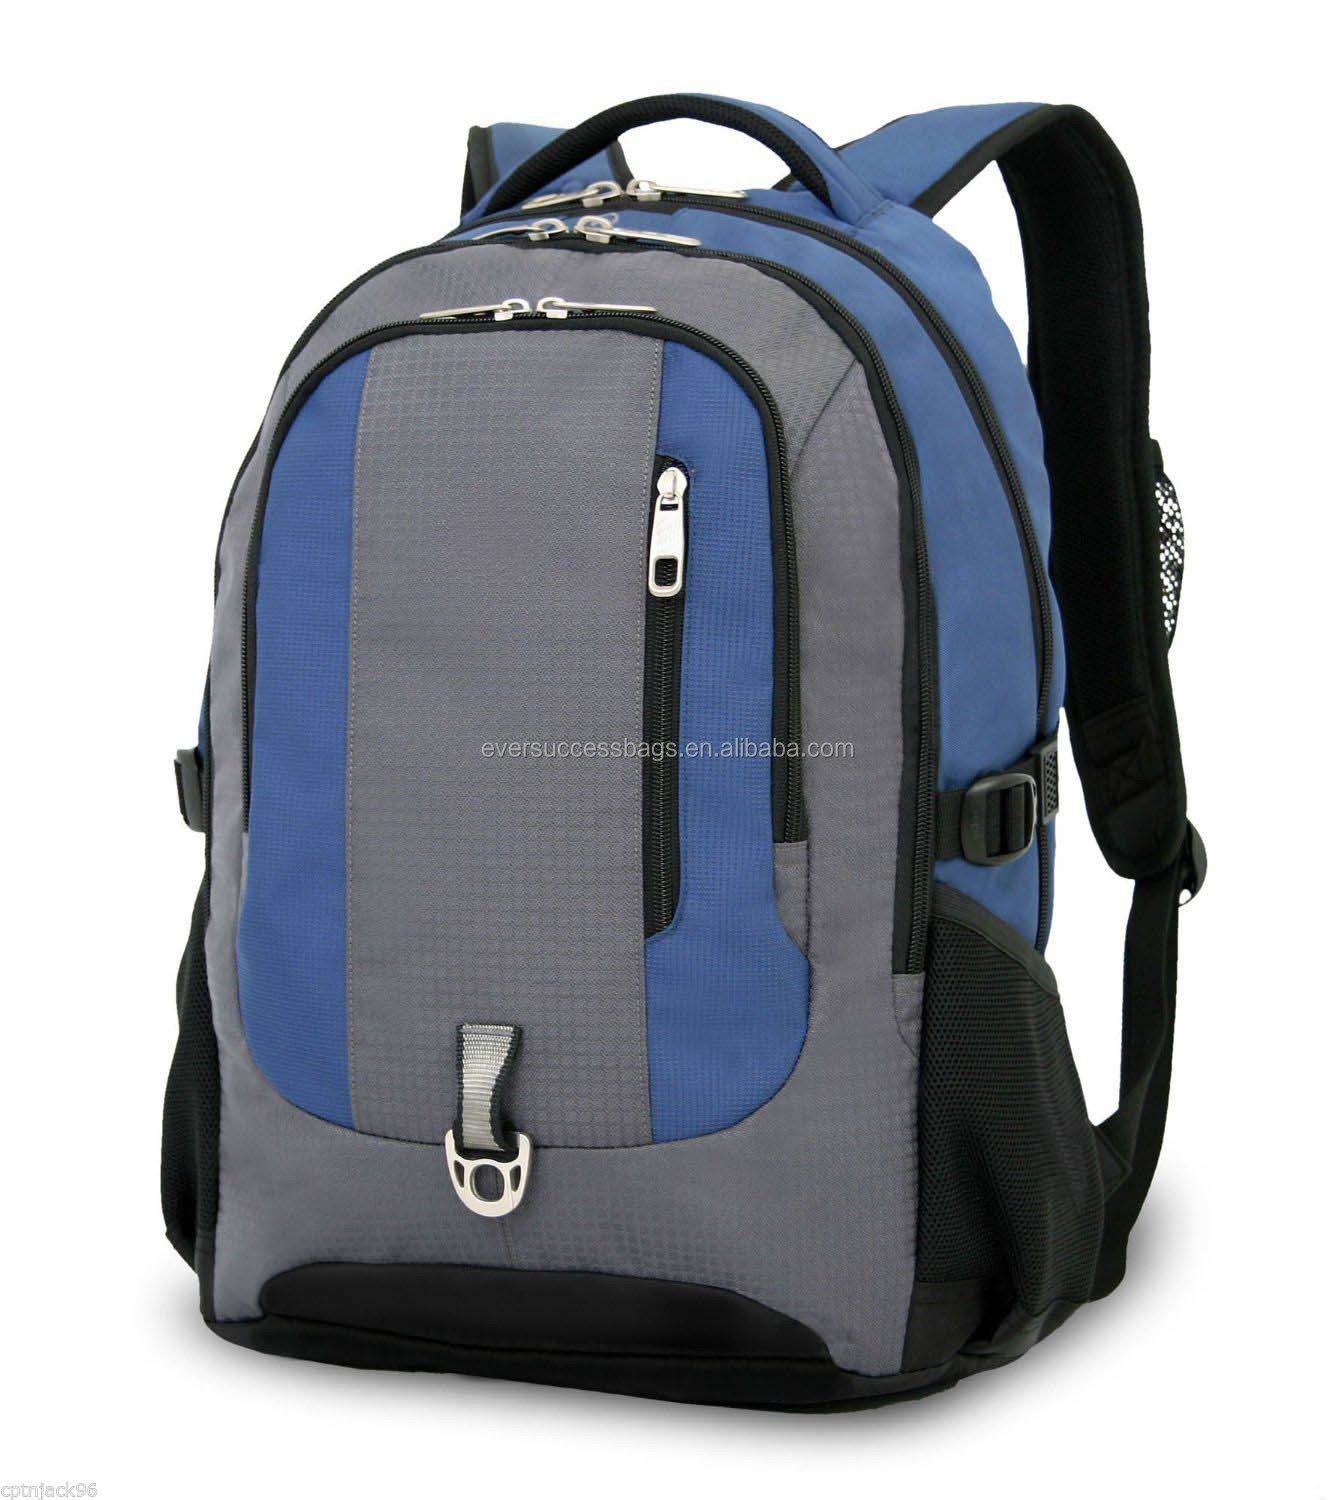 "High Quality Laptop Bag Fits Up to 15"" laptop With Sunglass and Headphone Hole(ESDB-0001)"